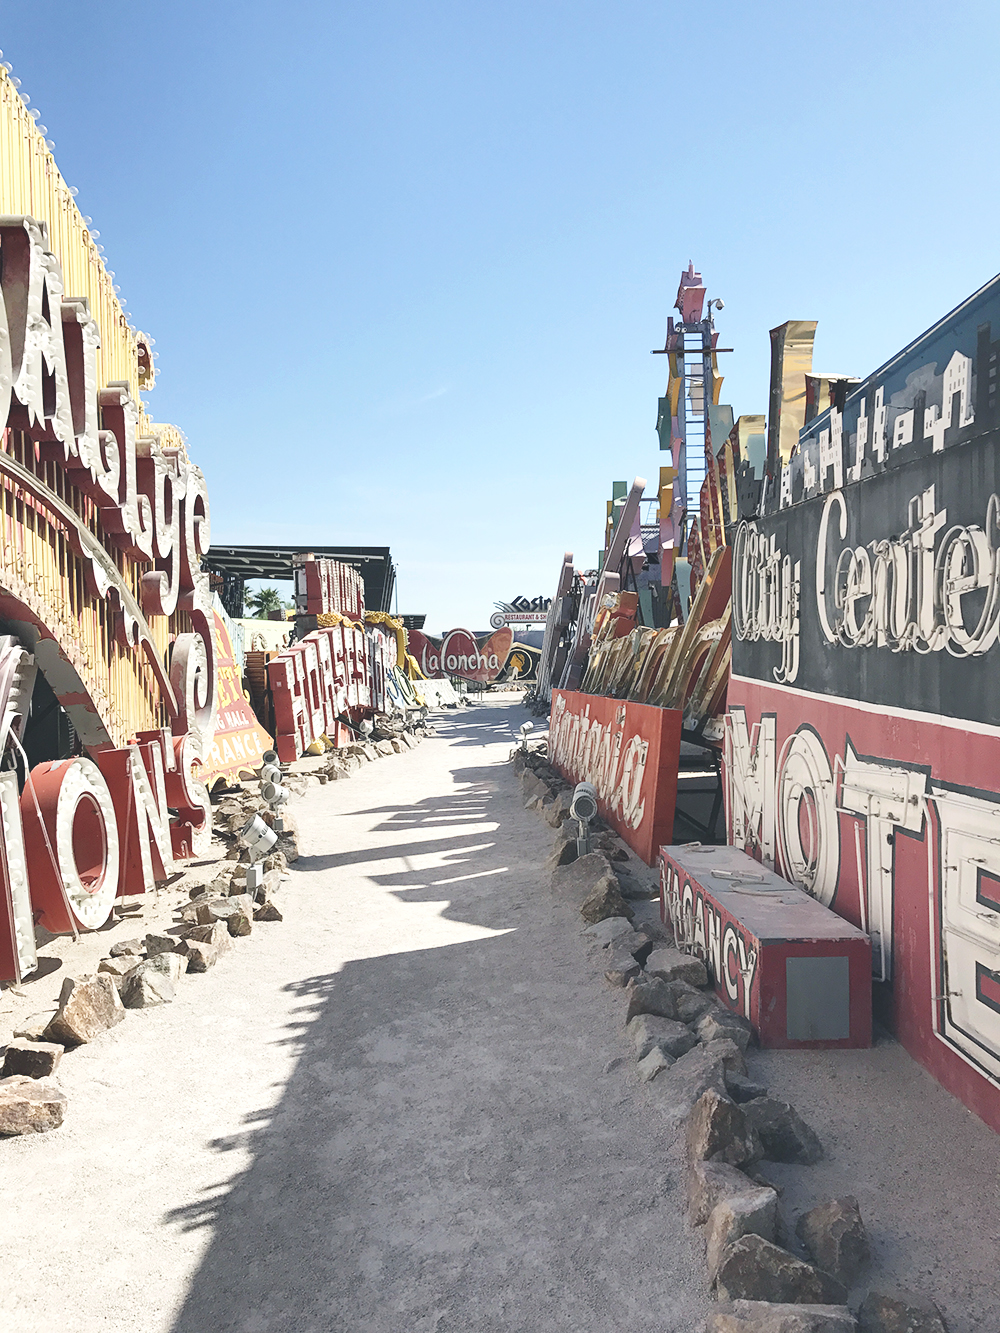 las vegas neon museum what it looks like